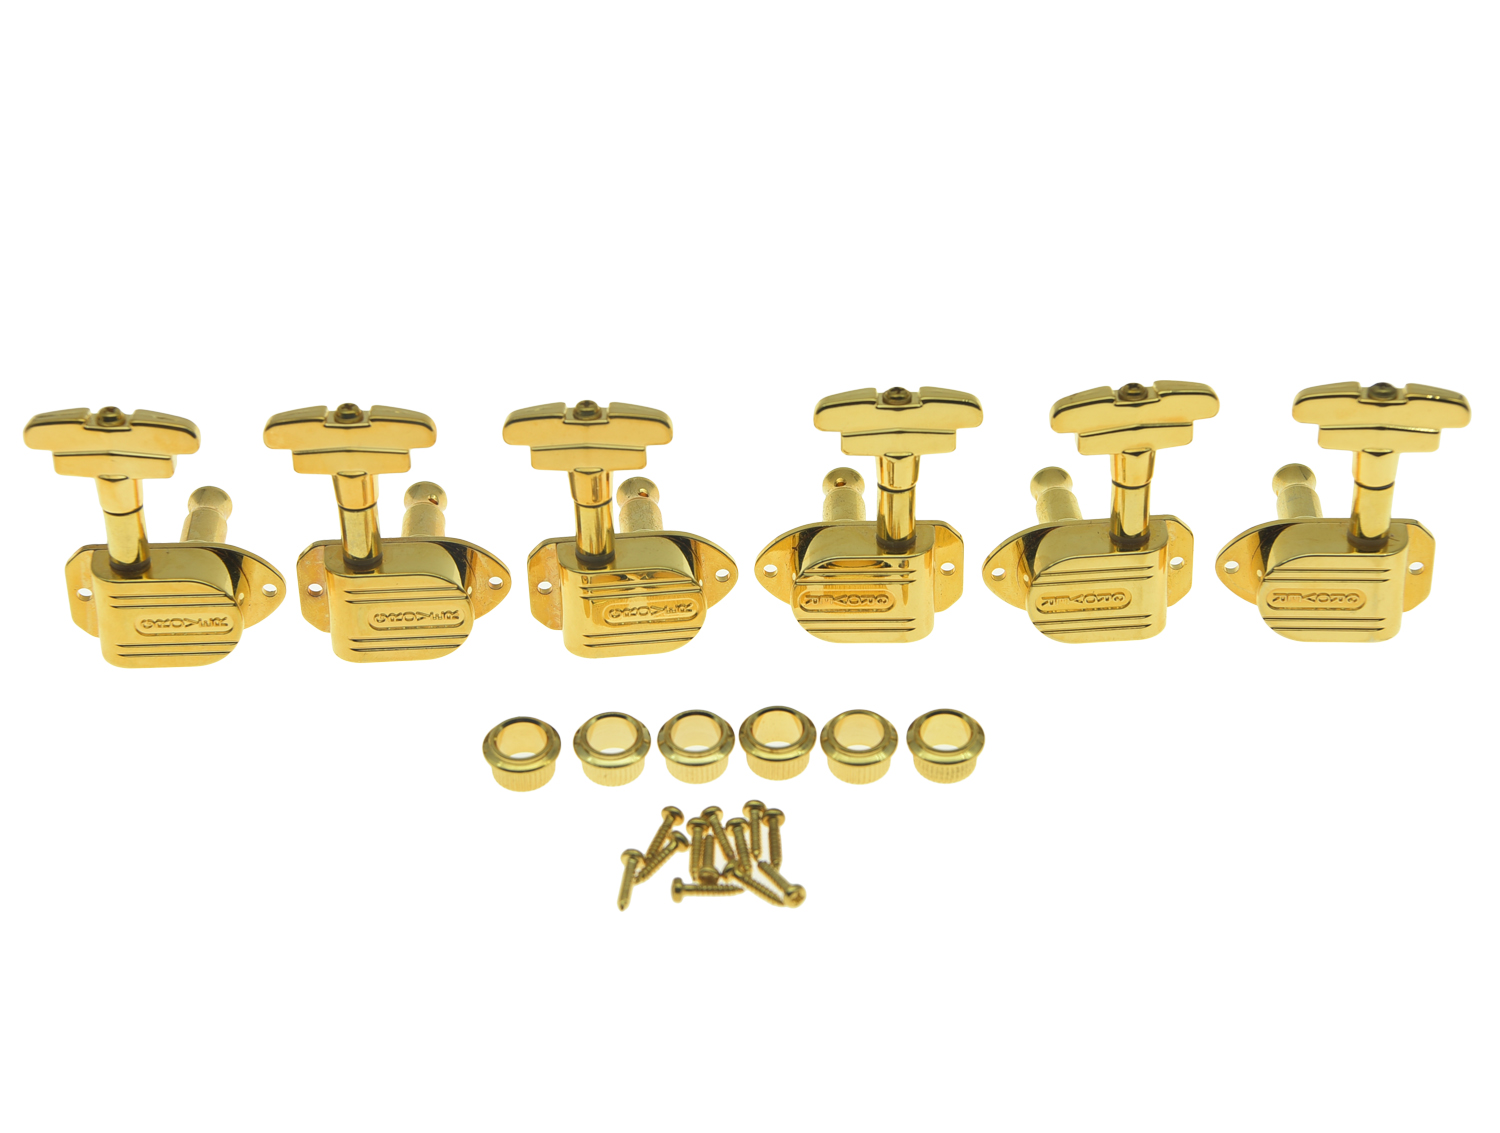 Dopro Grover Set of 6 Imperial 150 Series 150G Guitar Tuners 3x3 Guitar Tuning Keys 16:1 Guitar Machine Heads Gold<br>